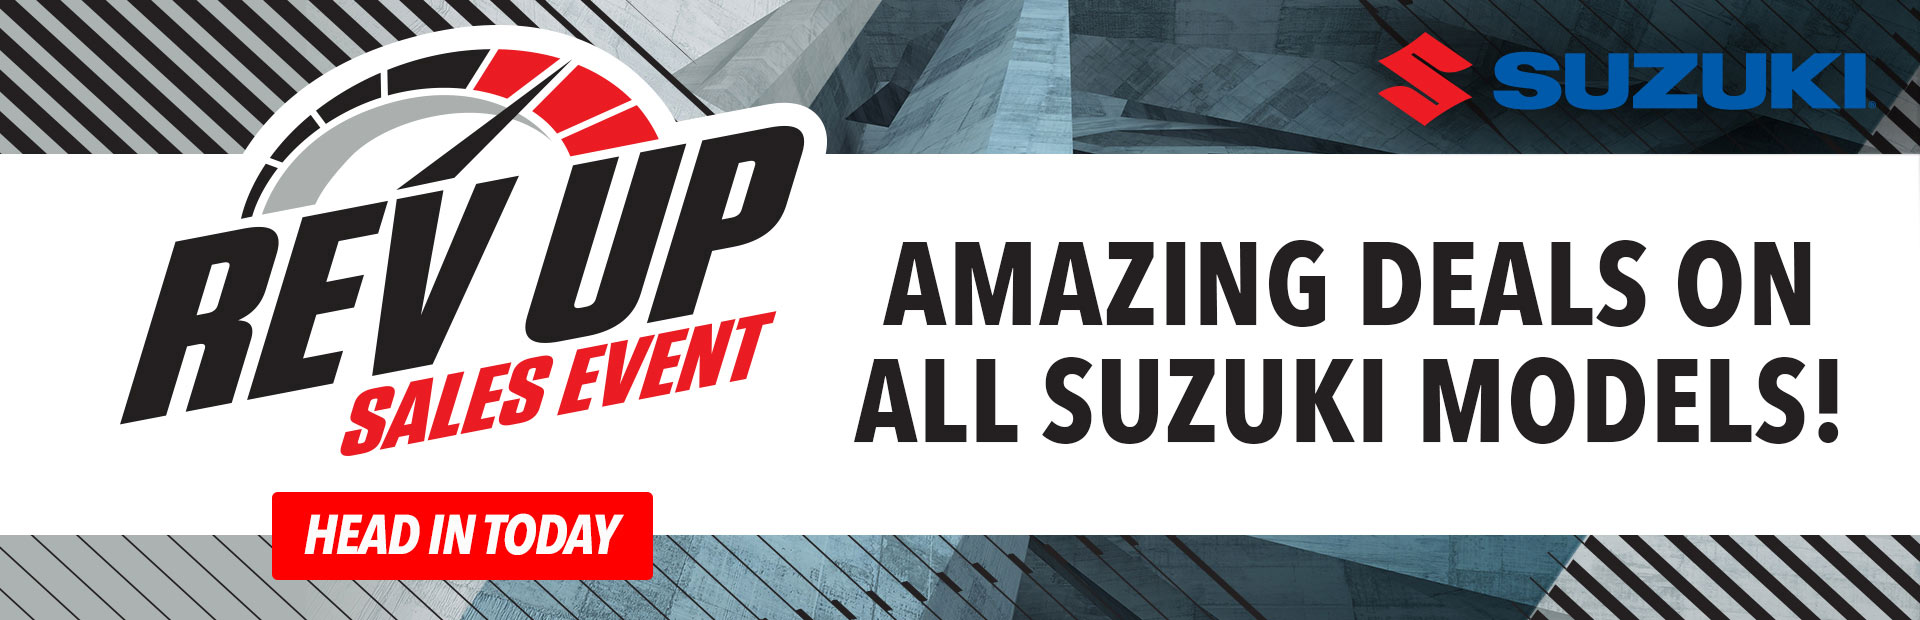 Suzuki: Rev Up Sales Event